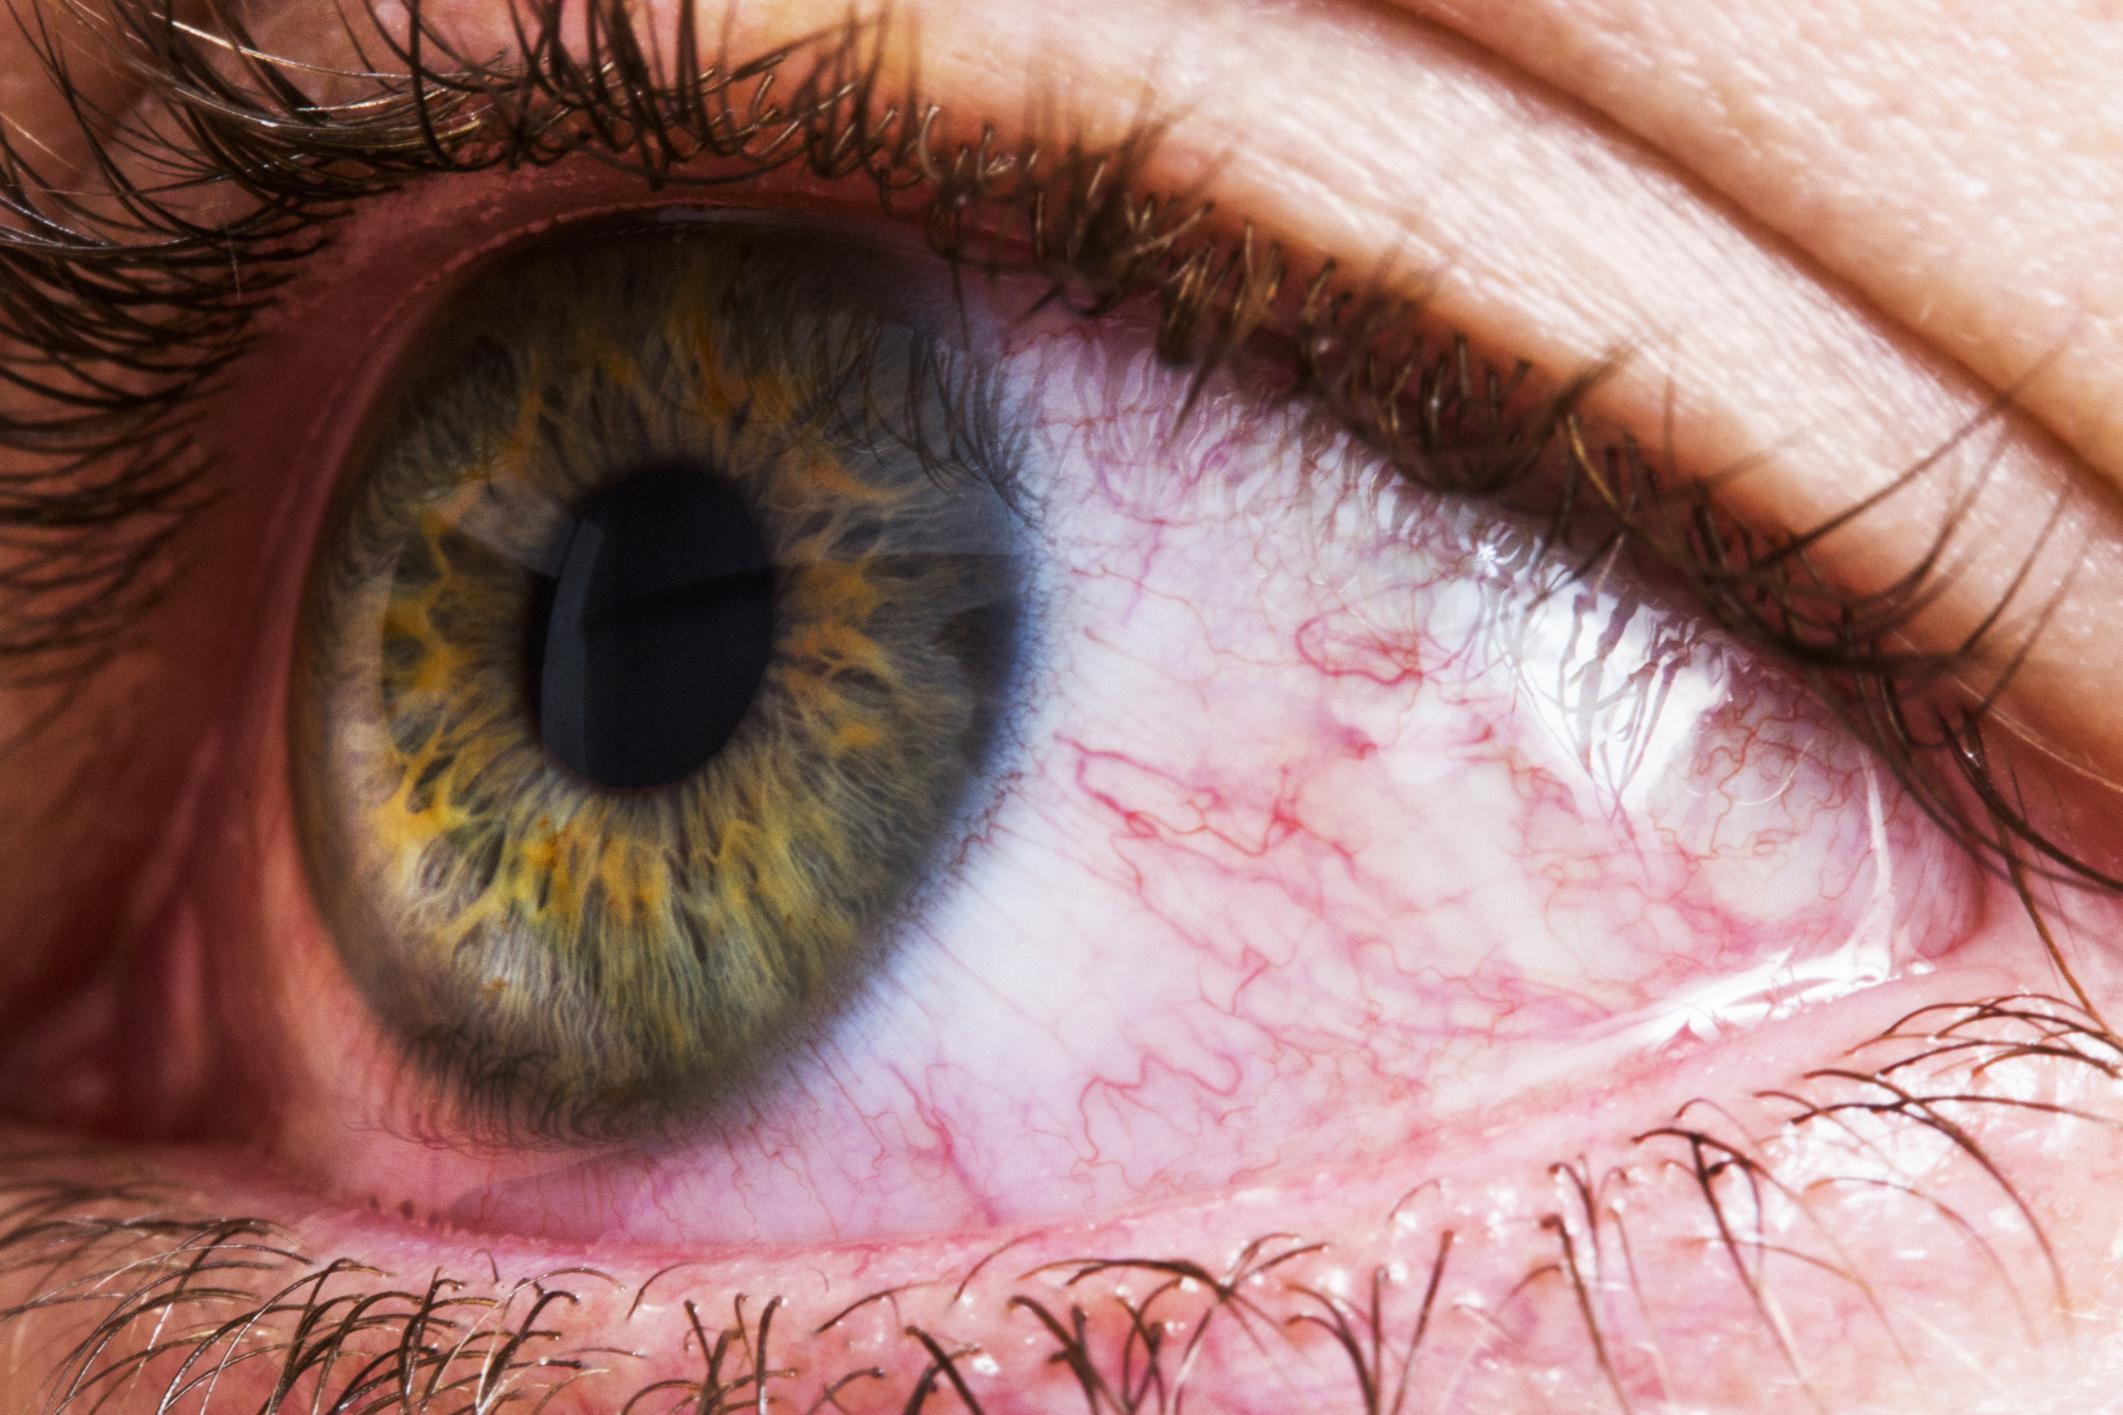 Warning Signs That Your Red Eye Could Be Serious